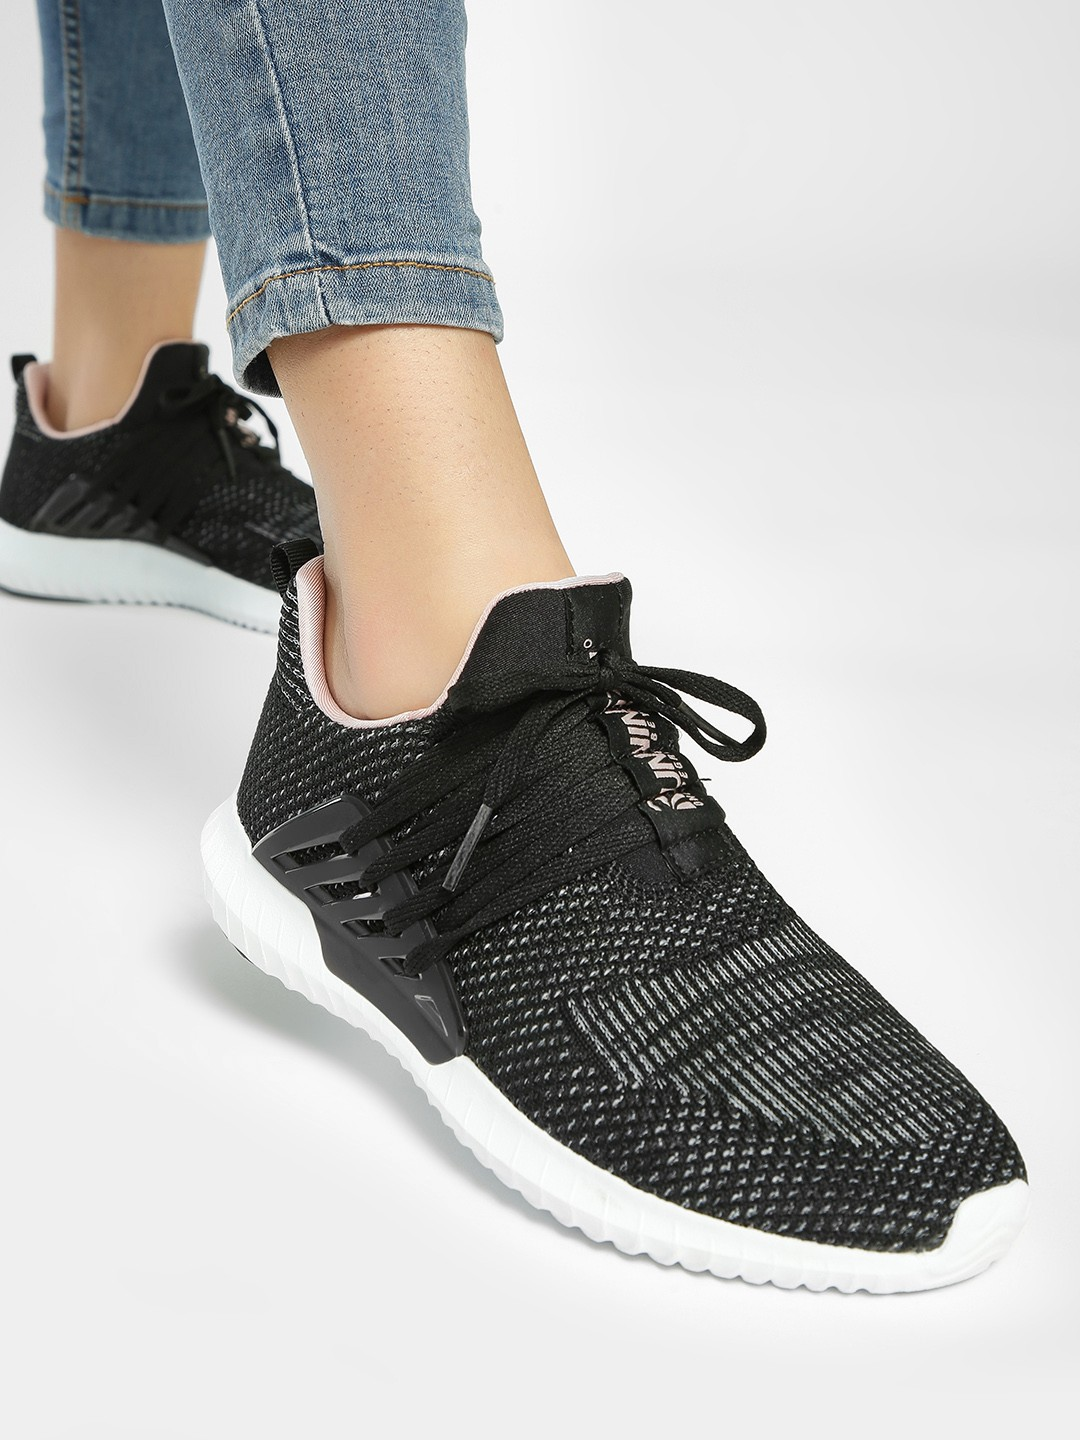 361 Degree Black Knitted Running Shoes 1